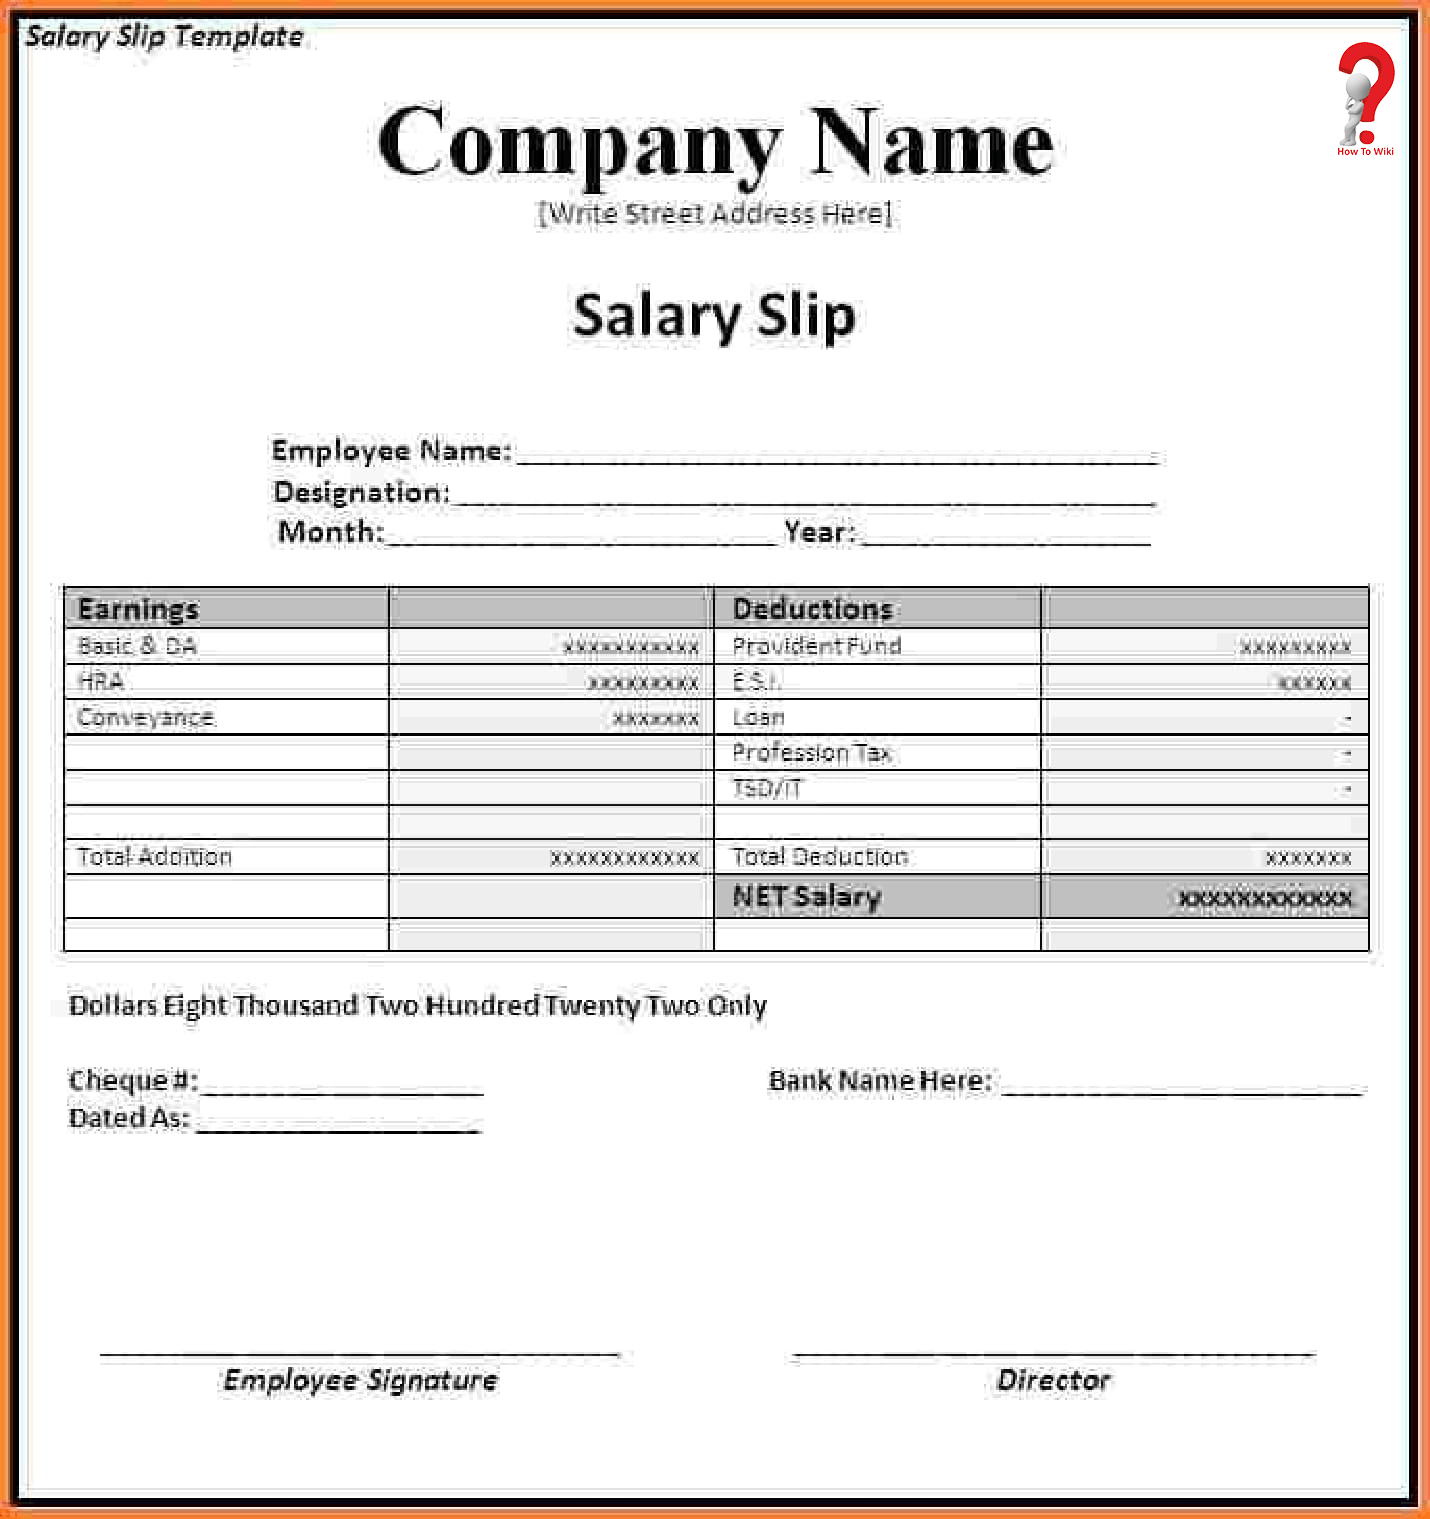 Sample Salary Slip Template Format